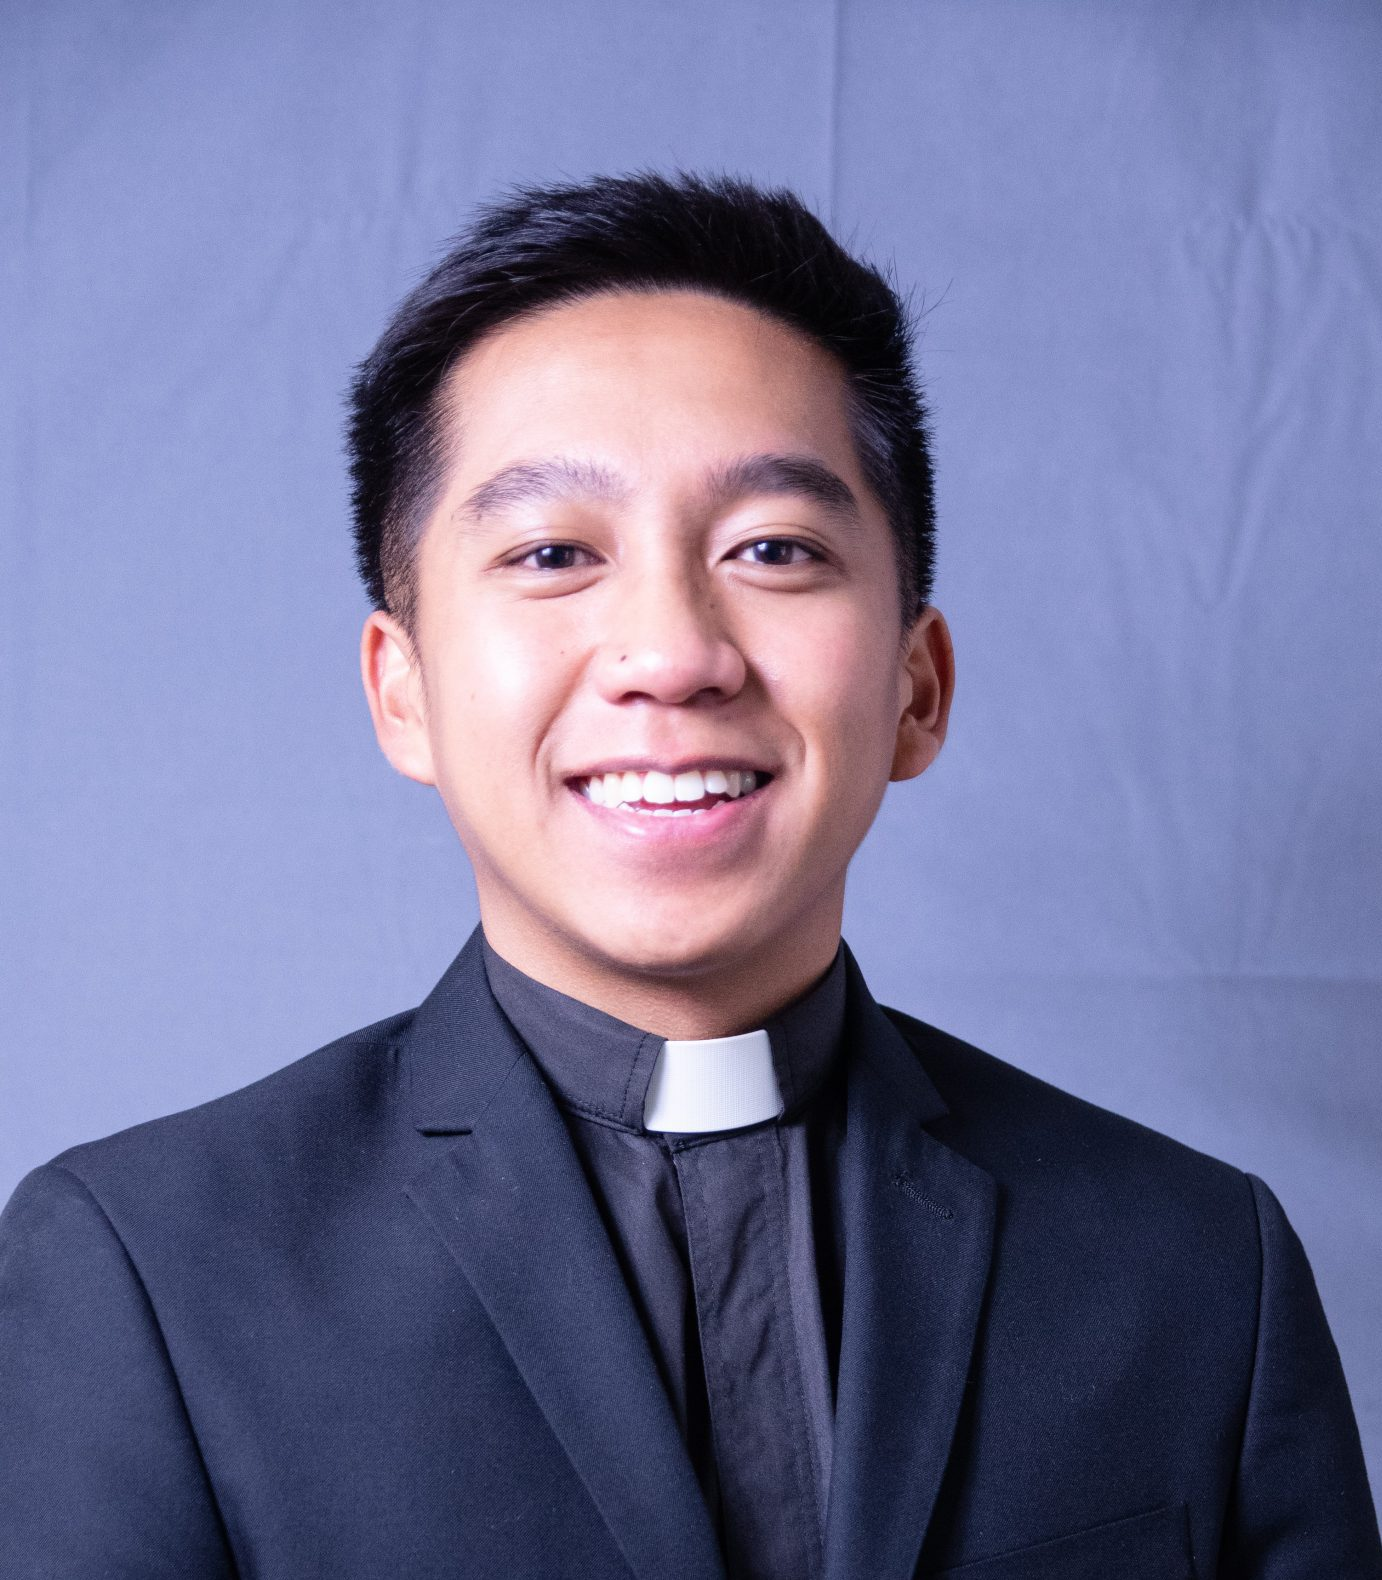 We welcome new seminarian intern…Jacob Ichbon!